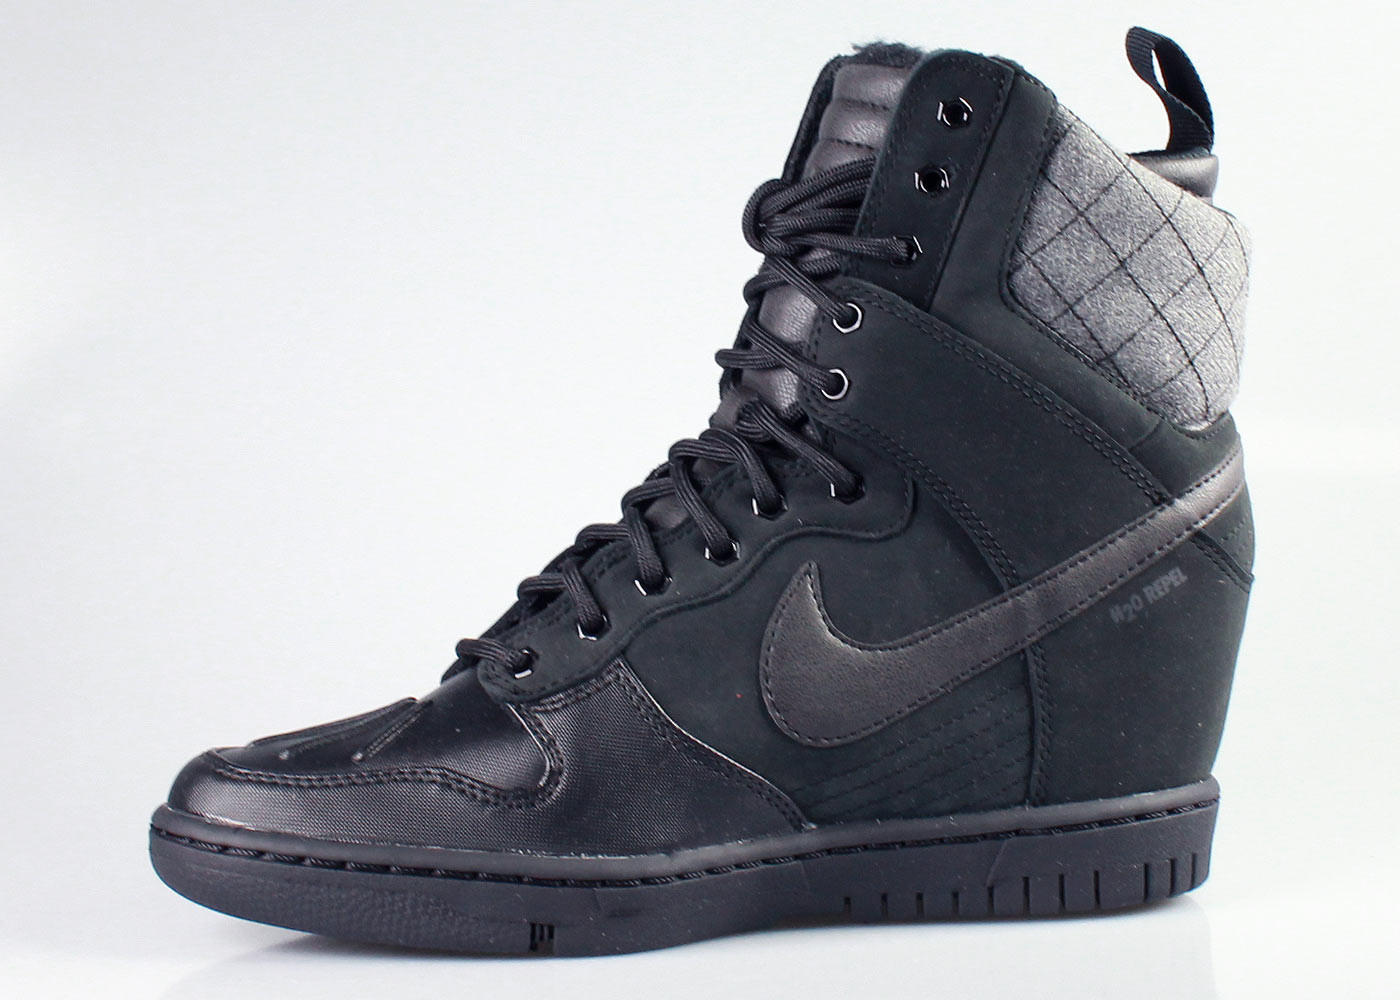 Nike Women s Dunk Sky Hi Wedge Sneakerboot Black 27a896126bda